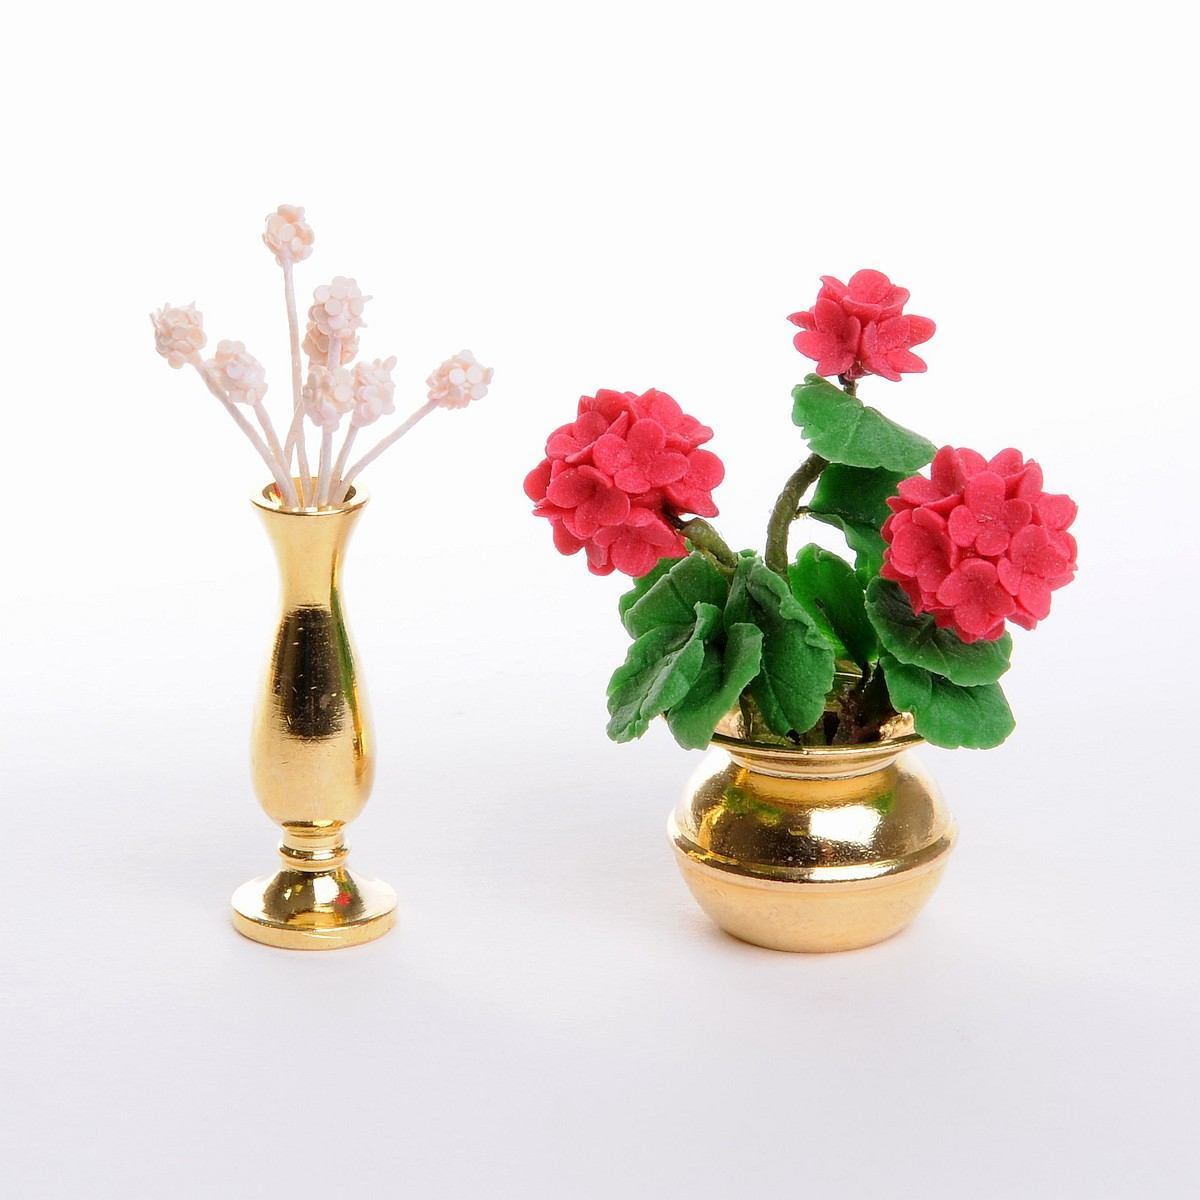 Flower Vase Set made of brass  sc 1 st  Mini Mundus & Flower Vase Set made of brass-17190